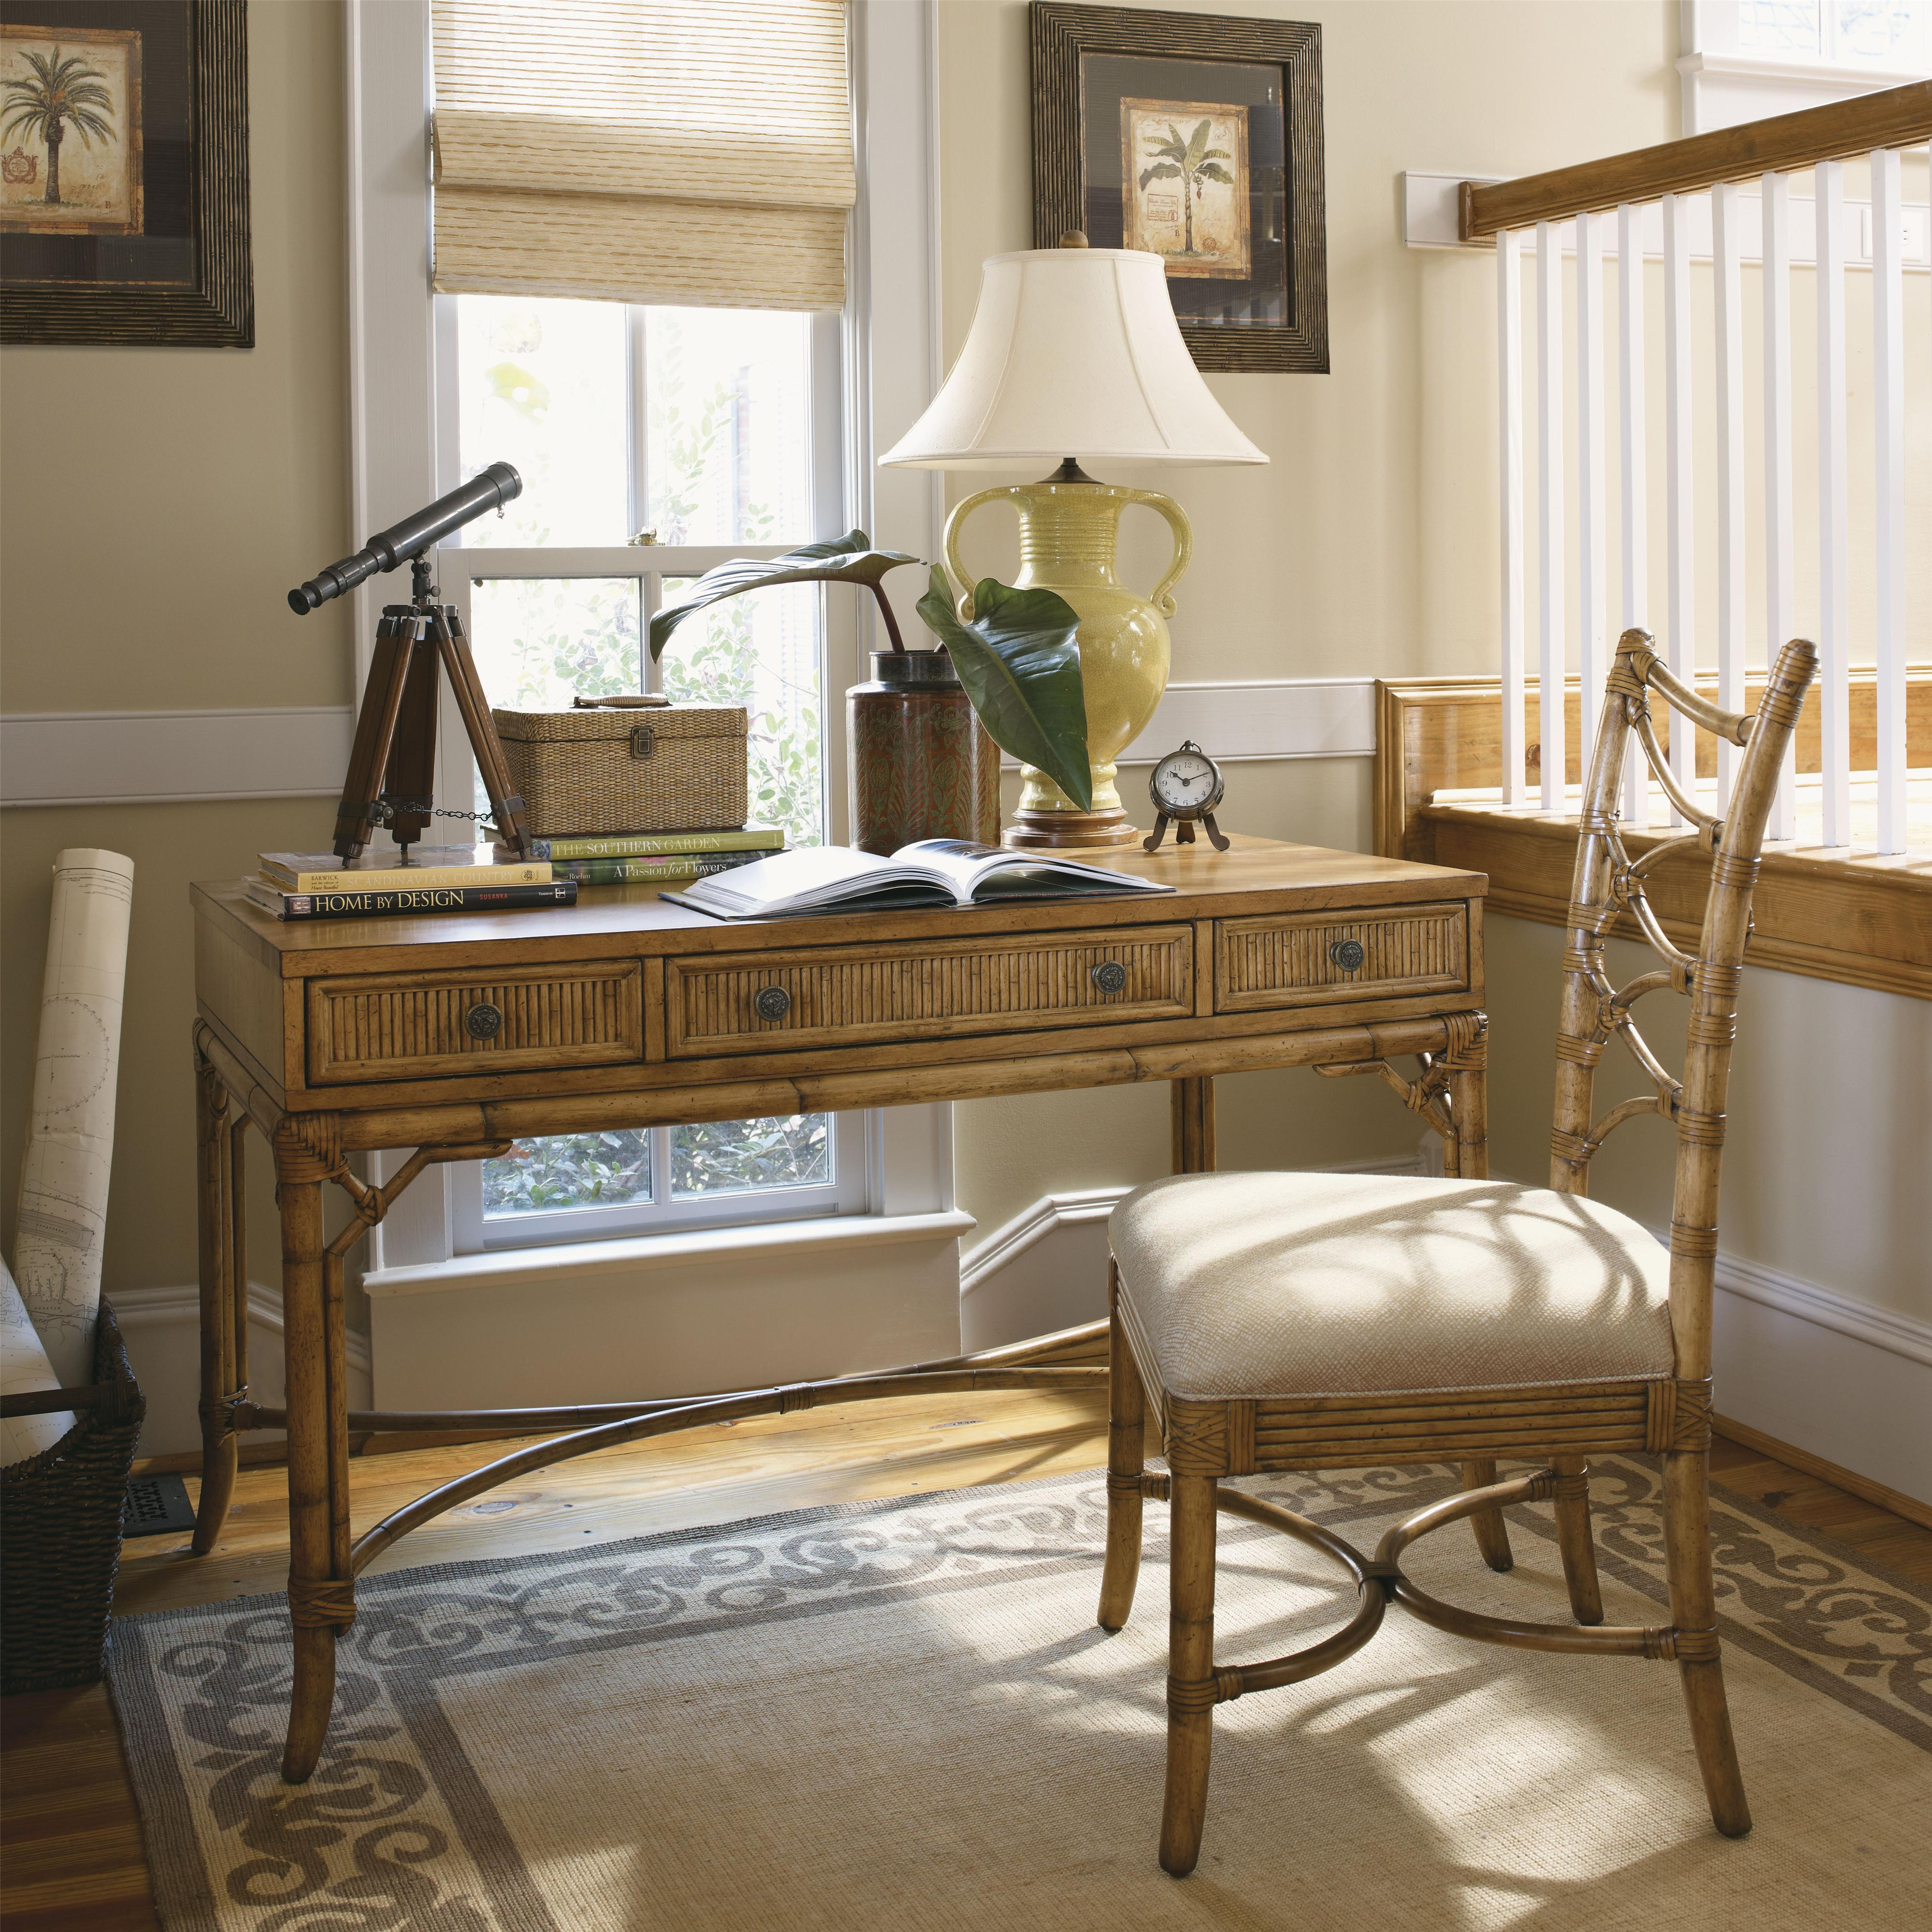 Beach House 5701 61 by Tommy Bahama Home C S Wo & Sons